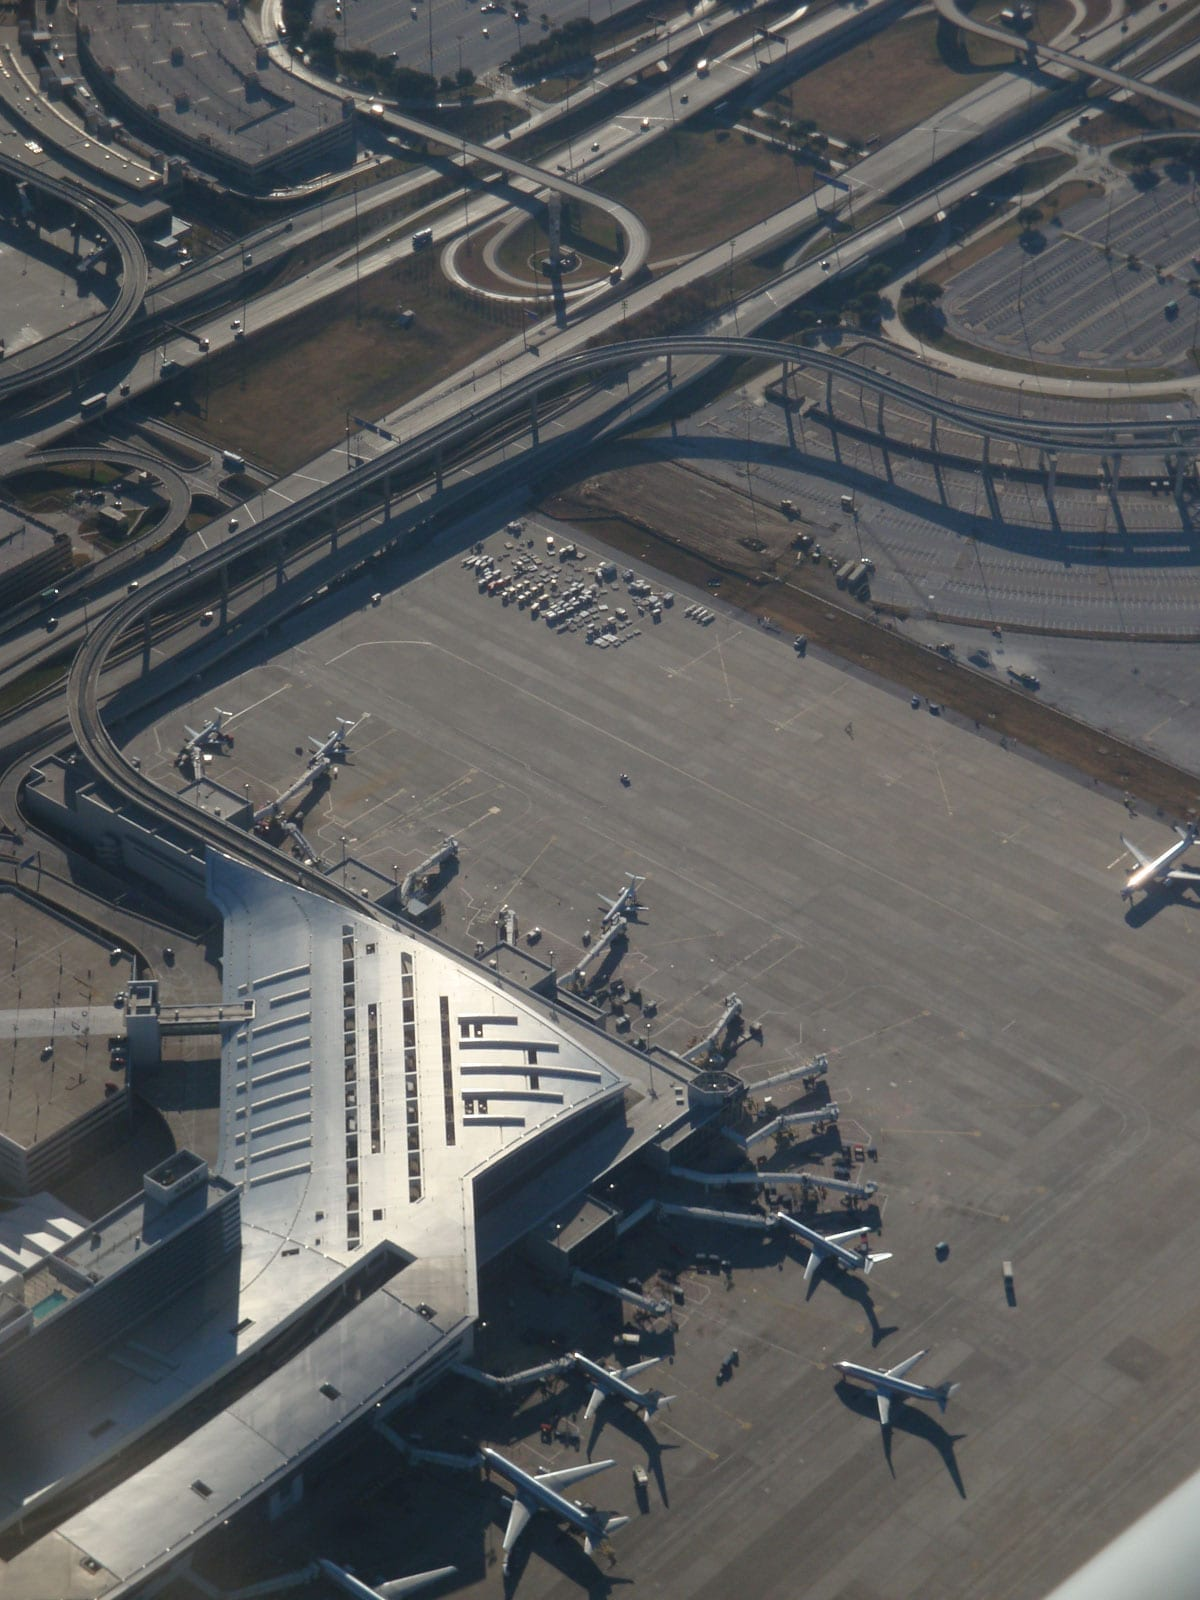 Aerial photograph of the DFW Terminal D.